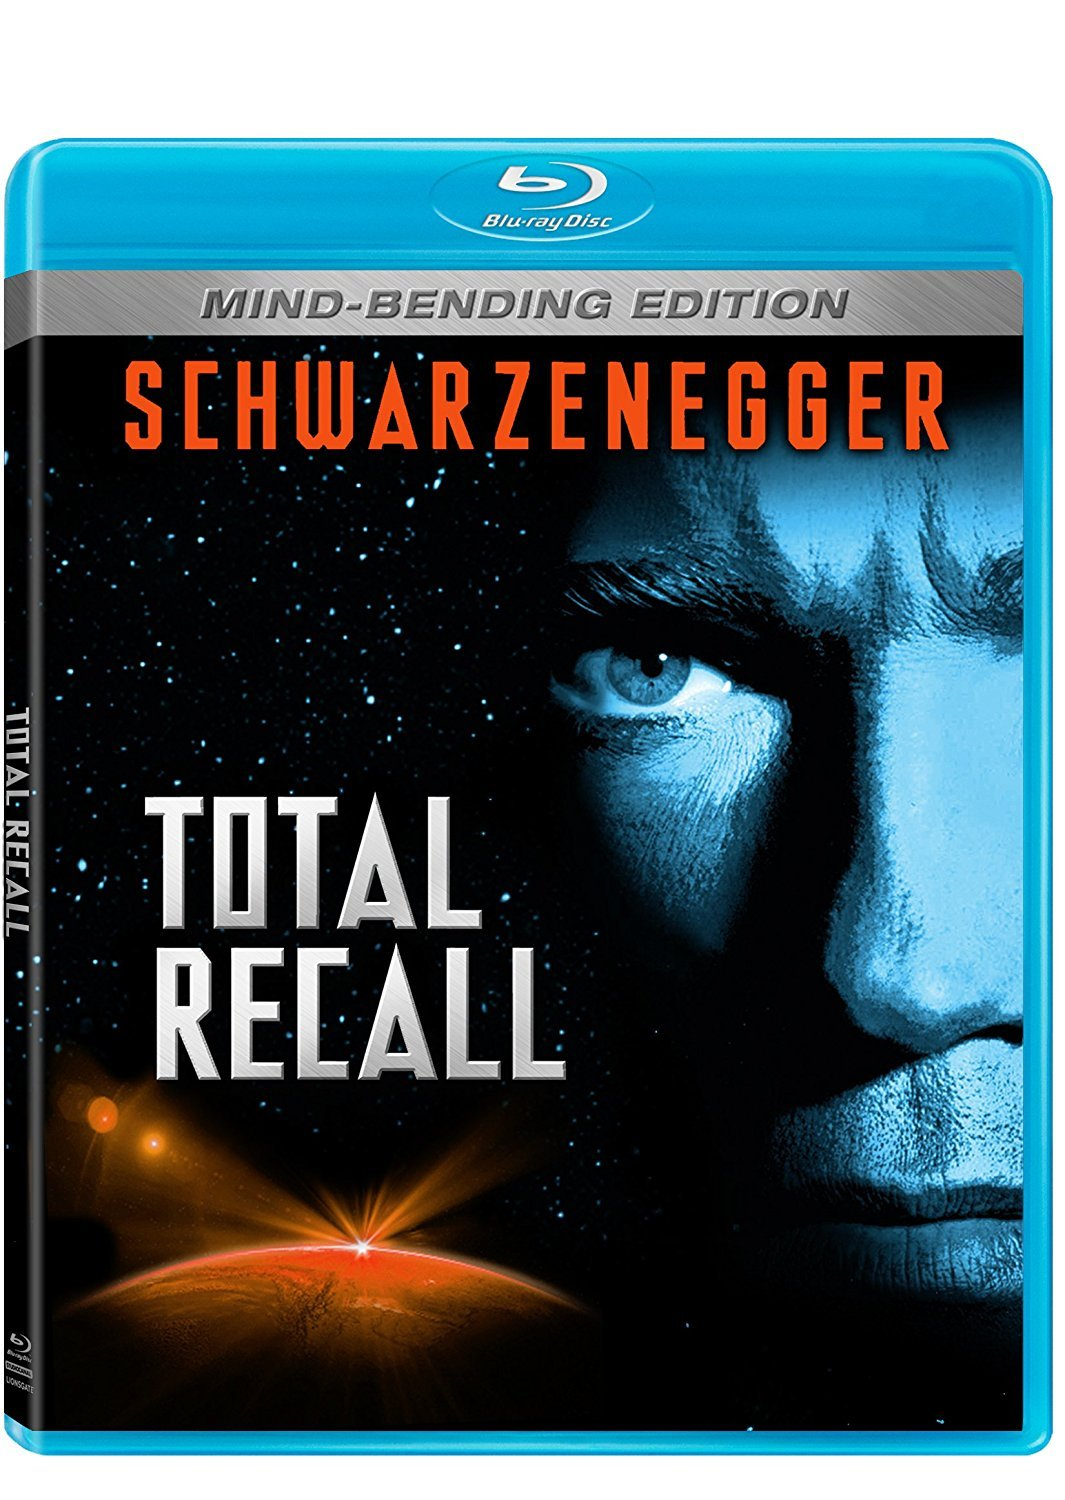 Total Recall (Mind-Bending Edition) [Blu-ray] (2012)